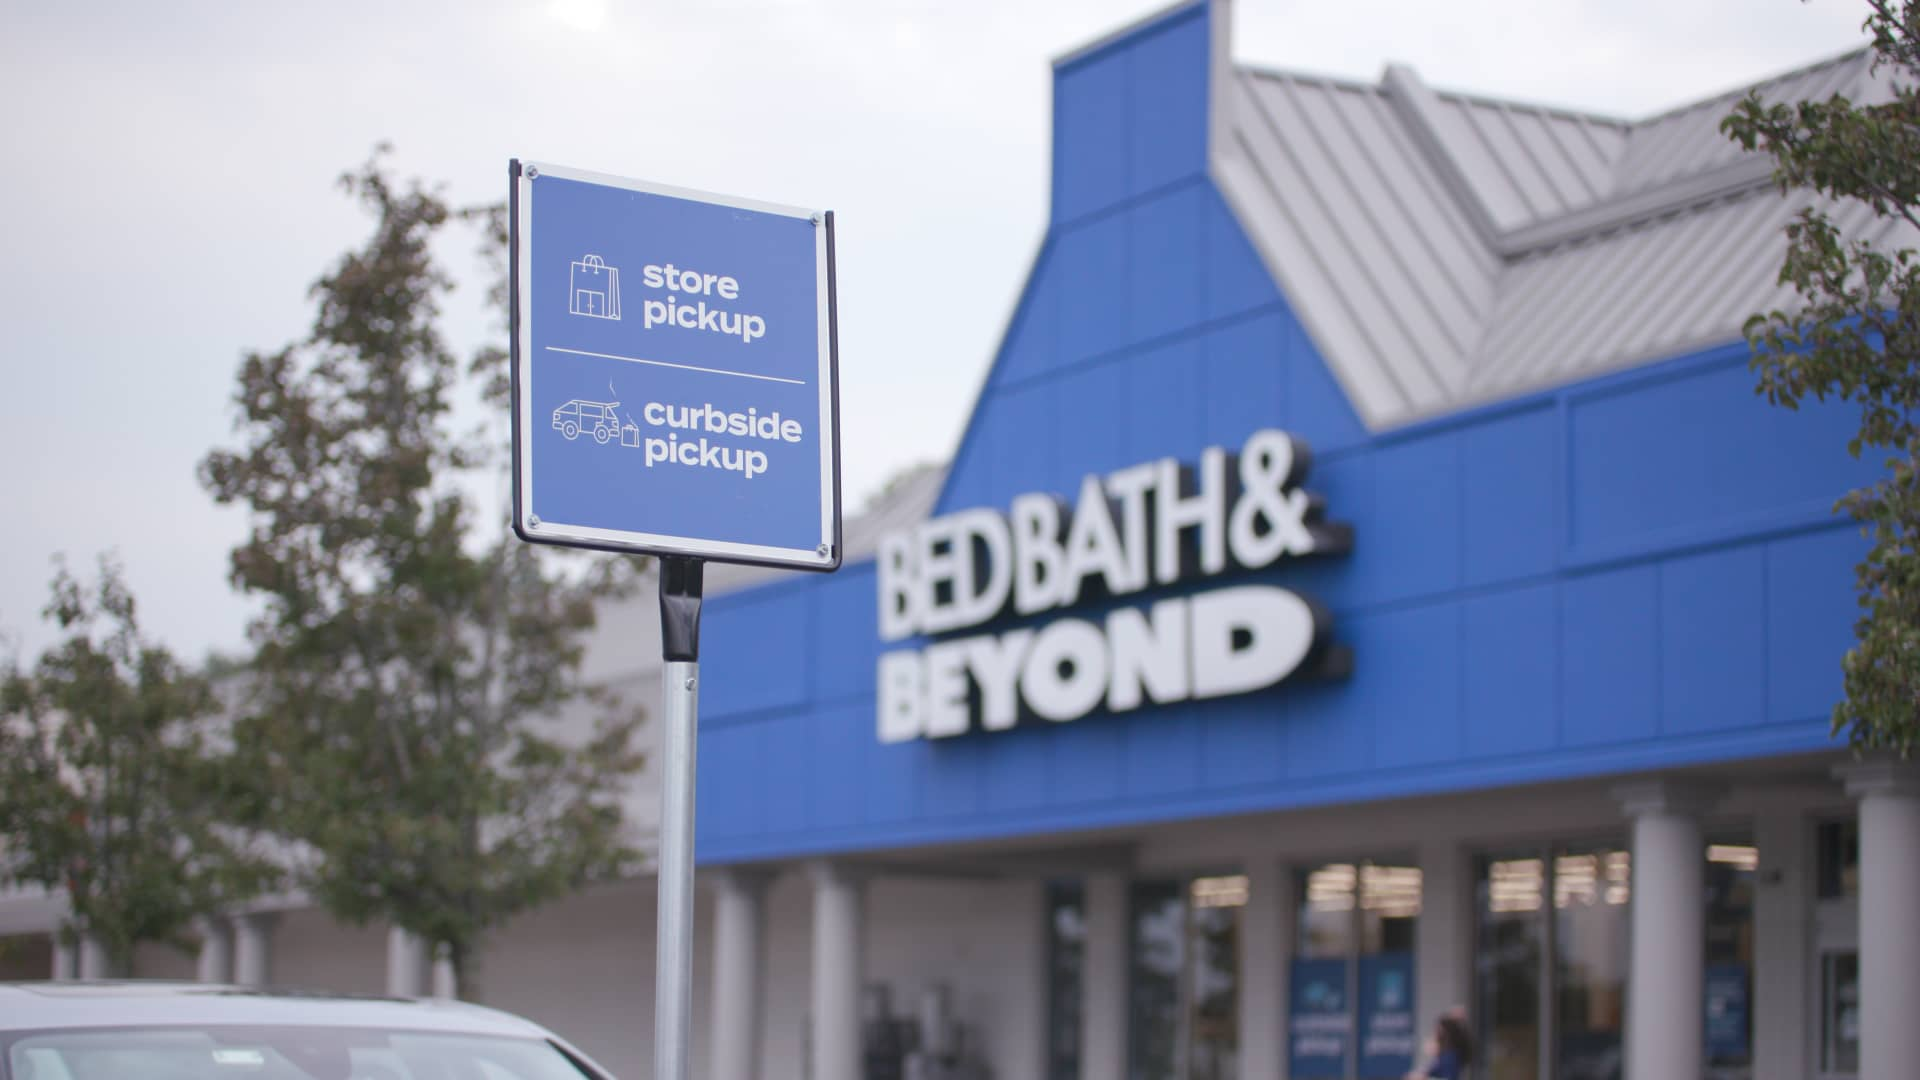 Bed Bath & Beyond quarterly sales tumble 16%, as store closures and divestitures hurt results